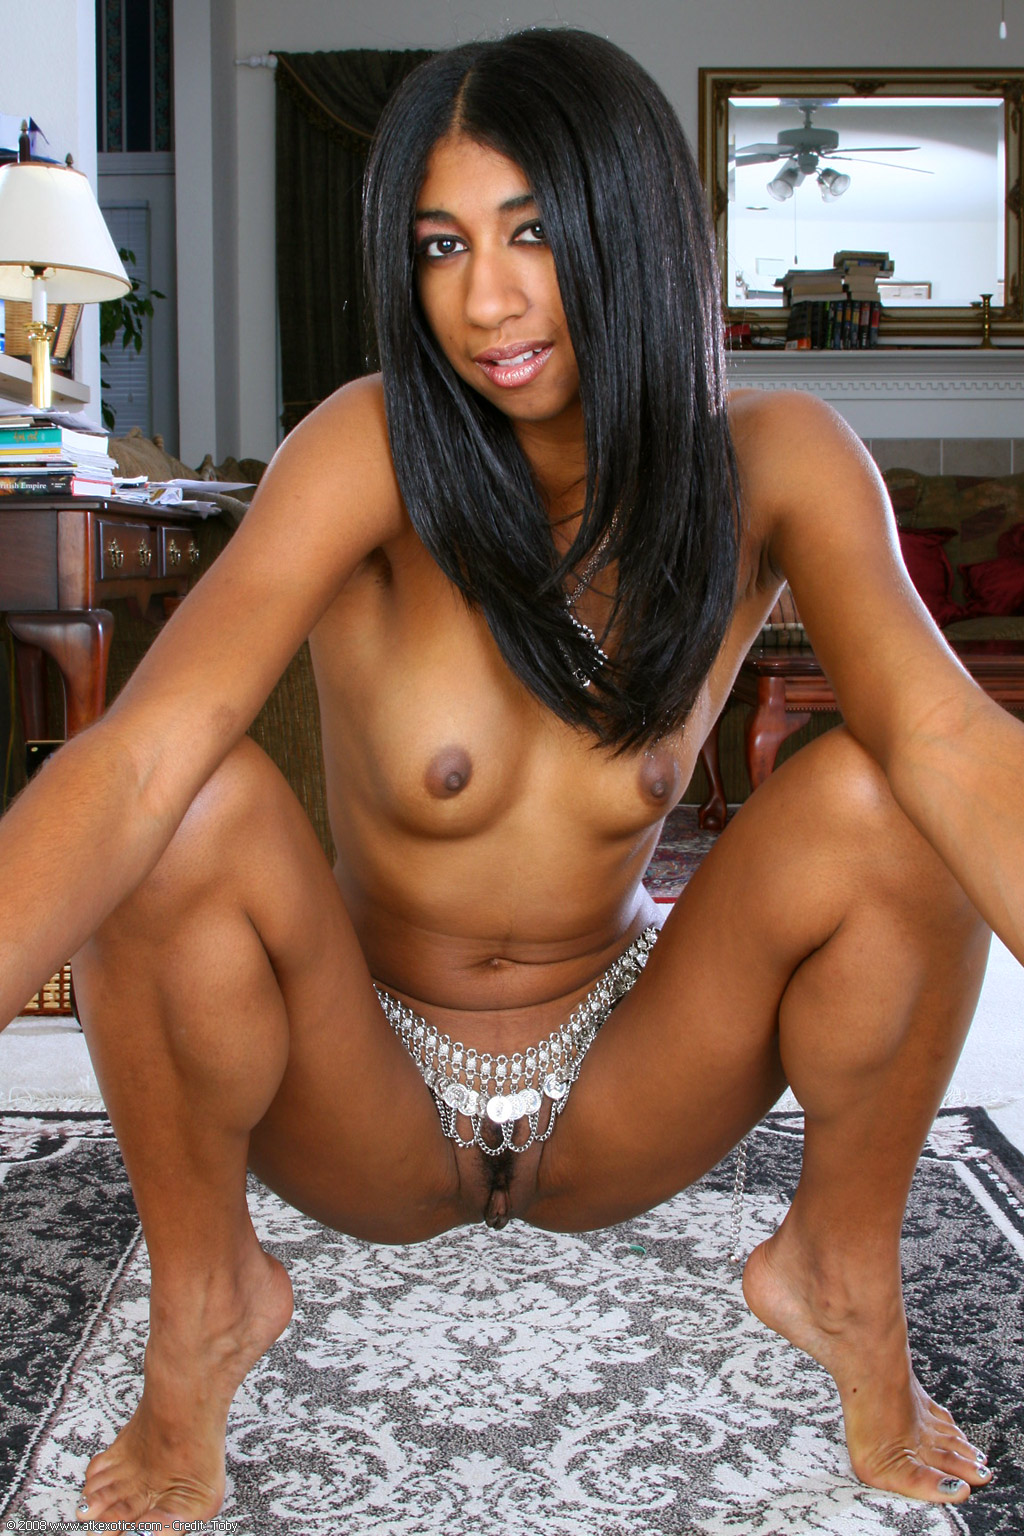 ebony pussy photo gallery ebony milf panties